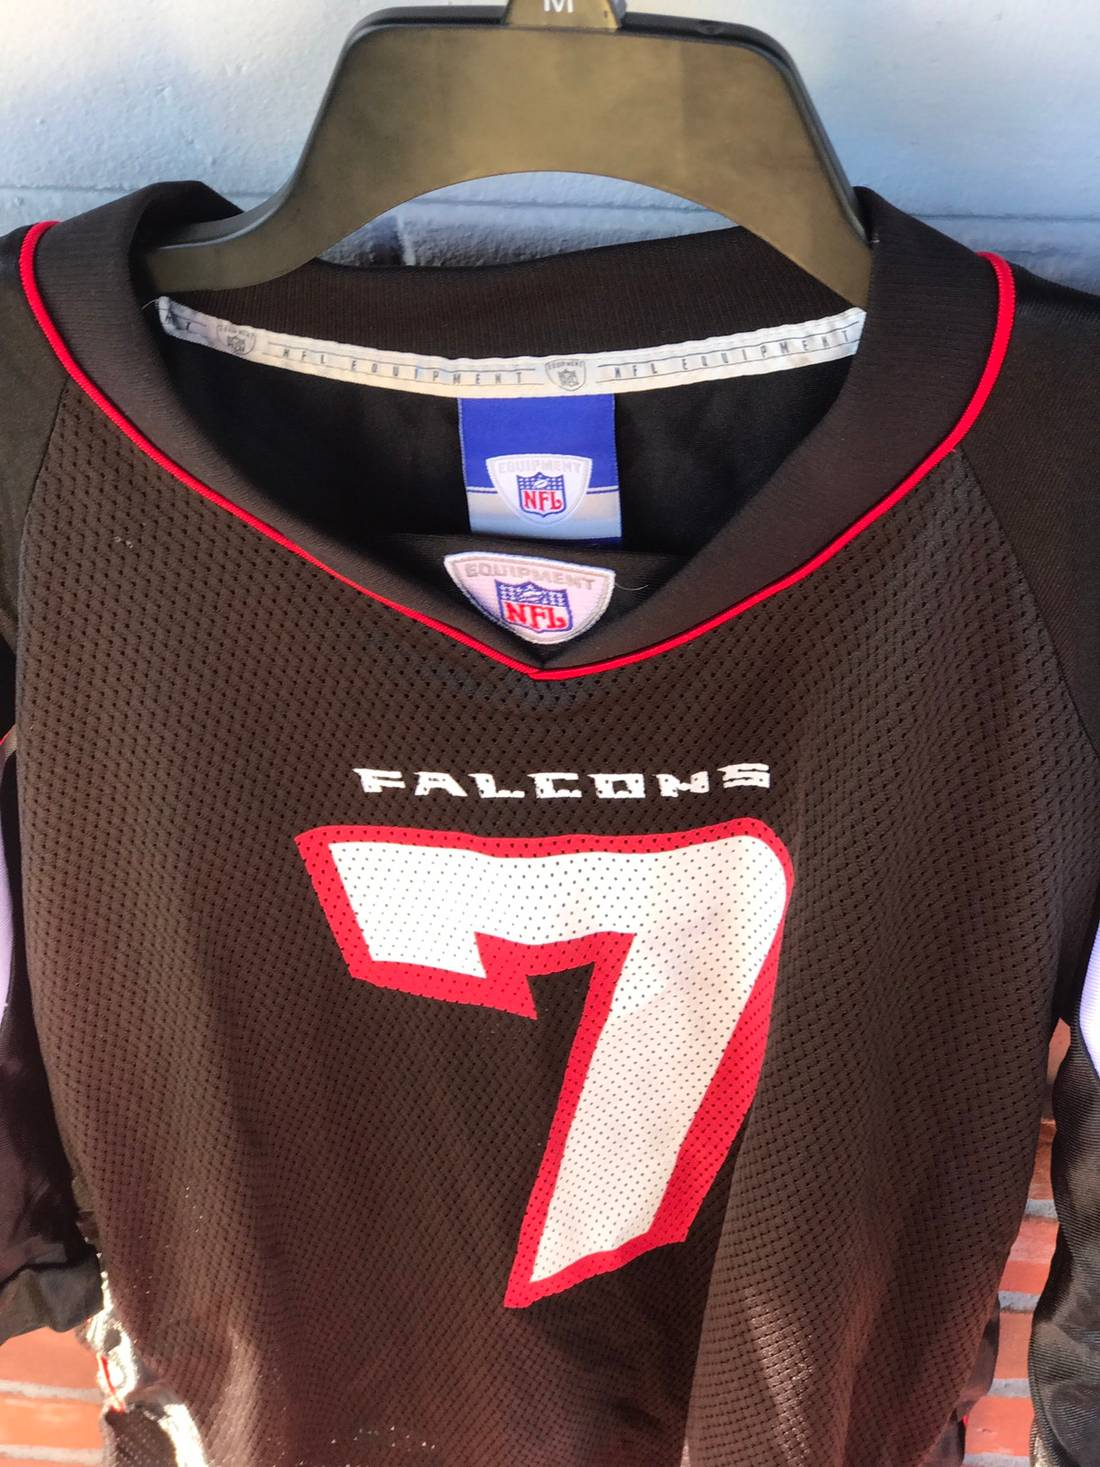 4bf05f96f61 ... top quality nfl mike vick atlanta falcons jersey size us m eu 48 50 2  770b9